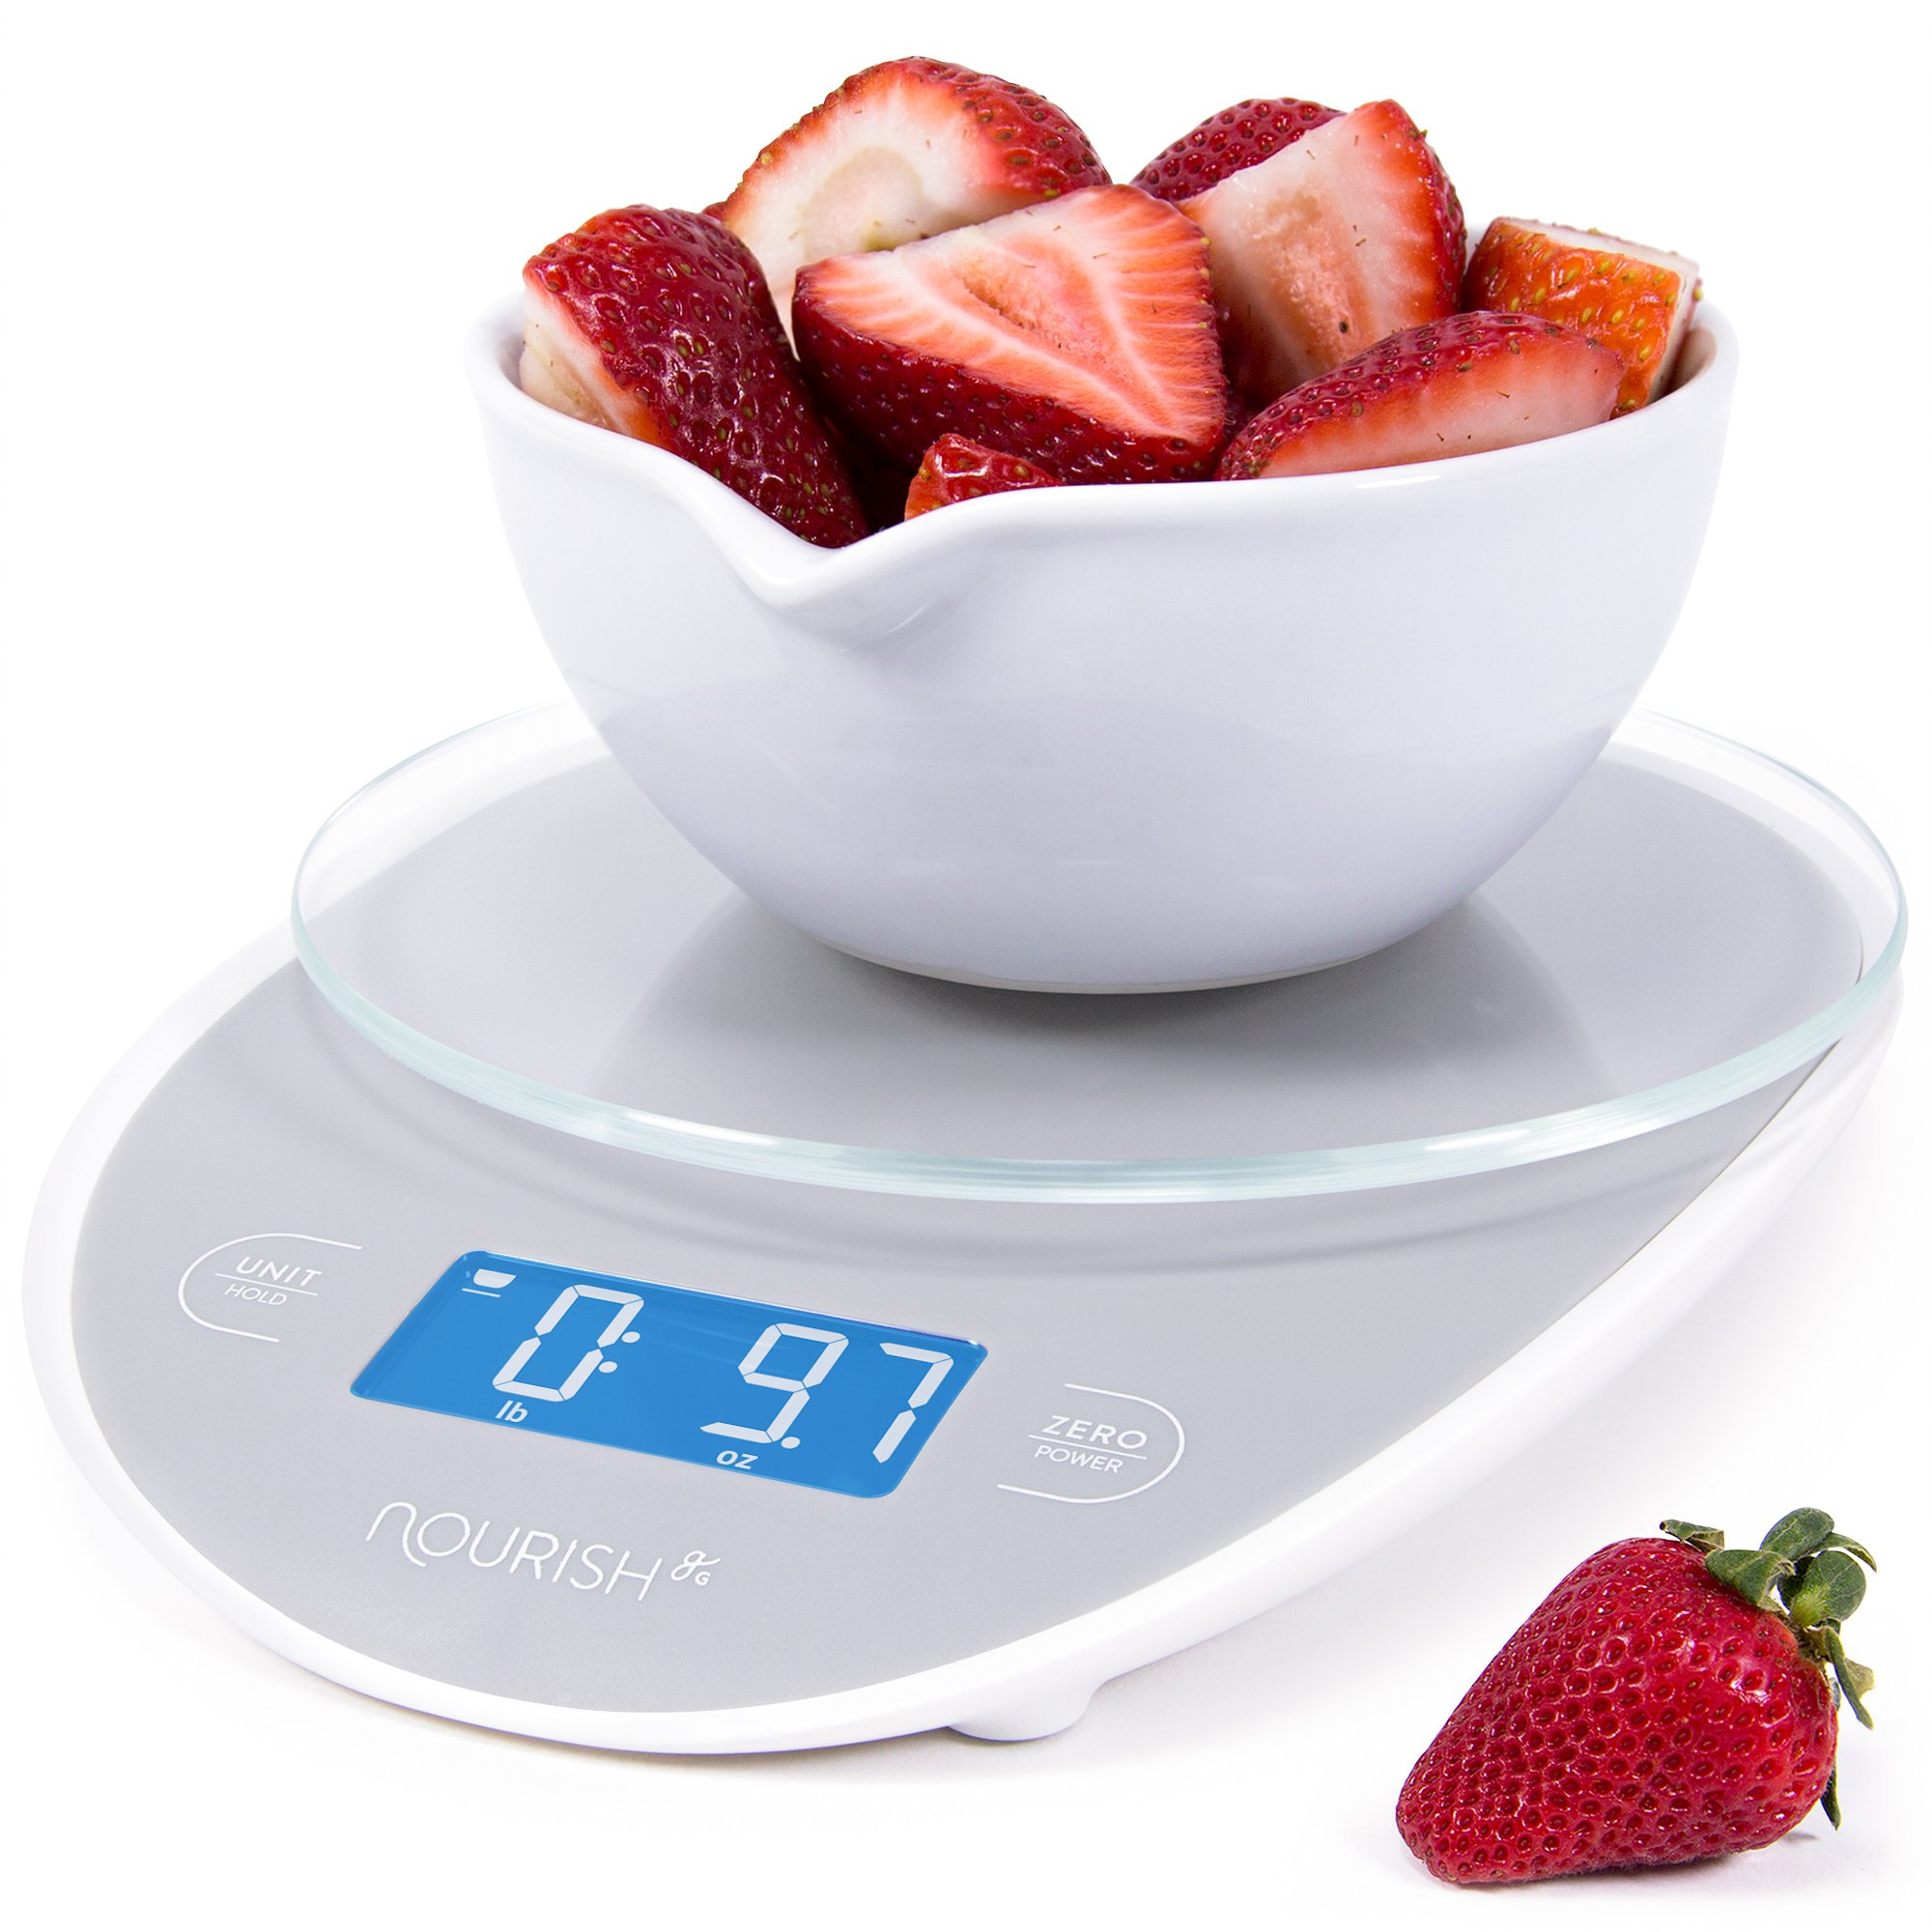 Nourish High-Accuracy Digital Food Coffee Scale by GreaterGoods Weight in 0.5 grams, oz, ml. Large Single Sensor Glass Top, Precision Kitchen Measuring. Backlit Display